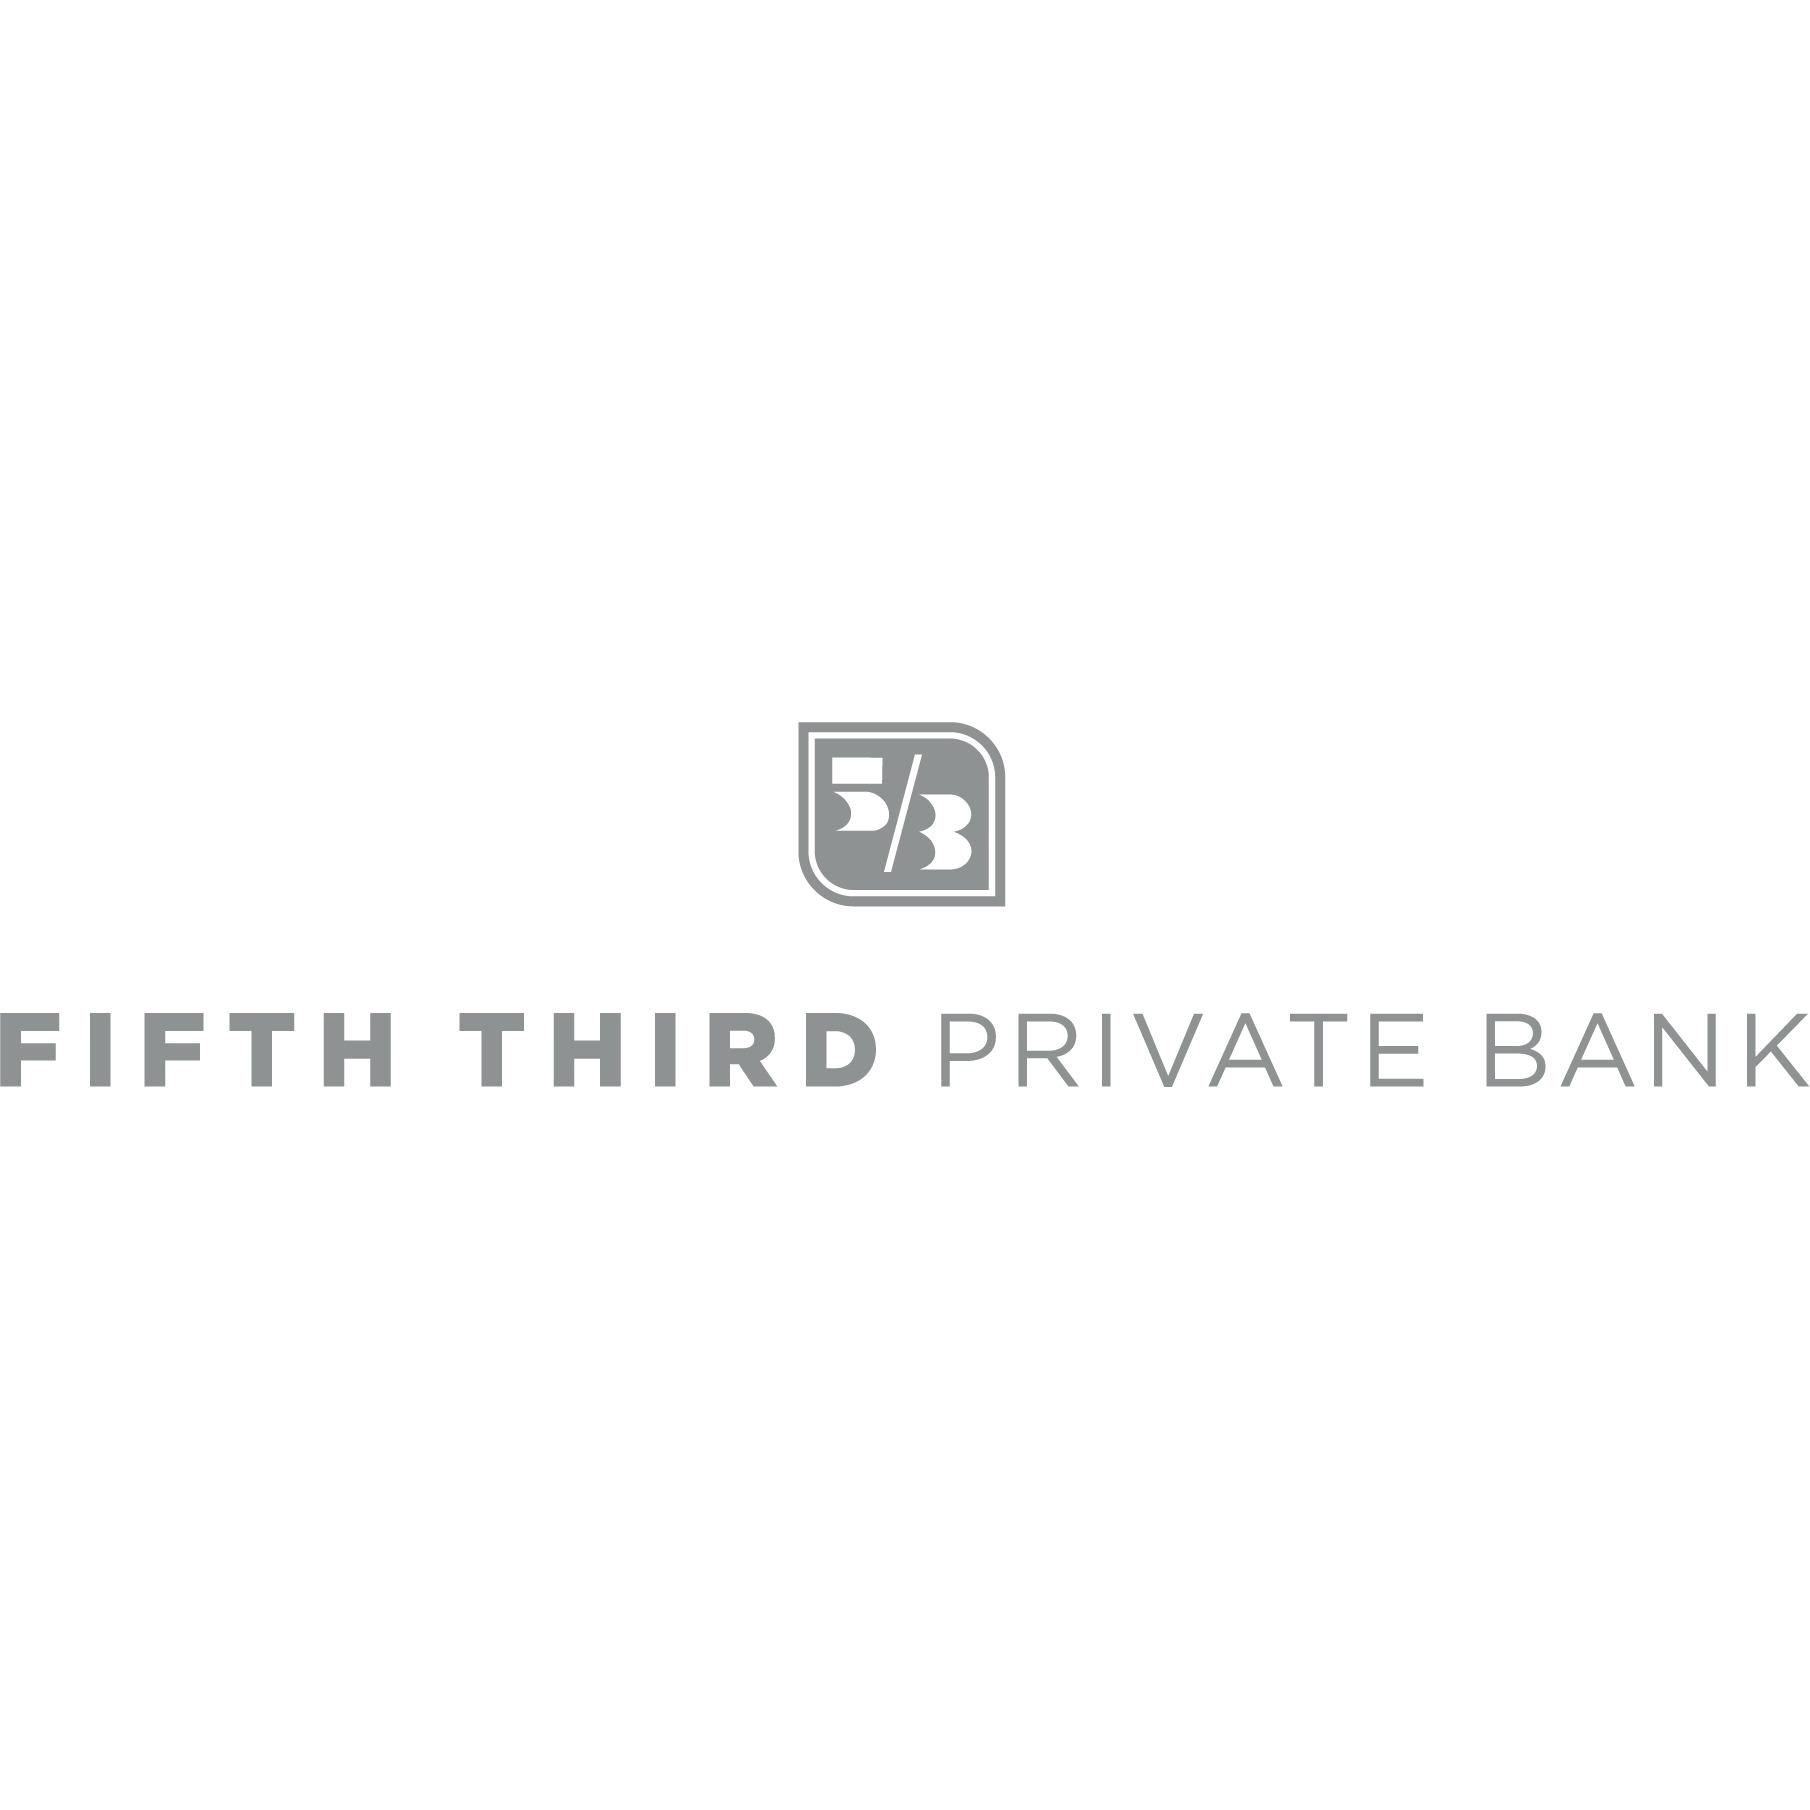 Fifth Third Private Bank - Christopher Mosbarger